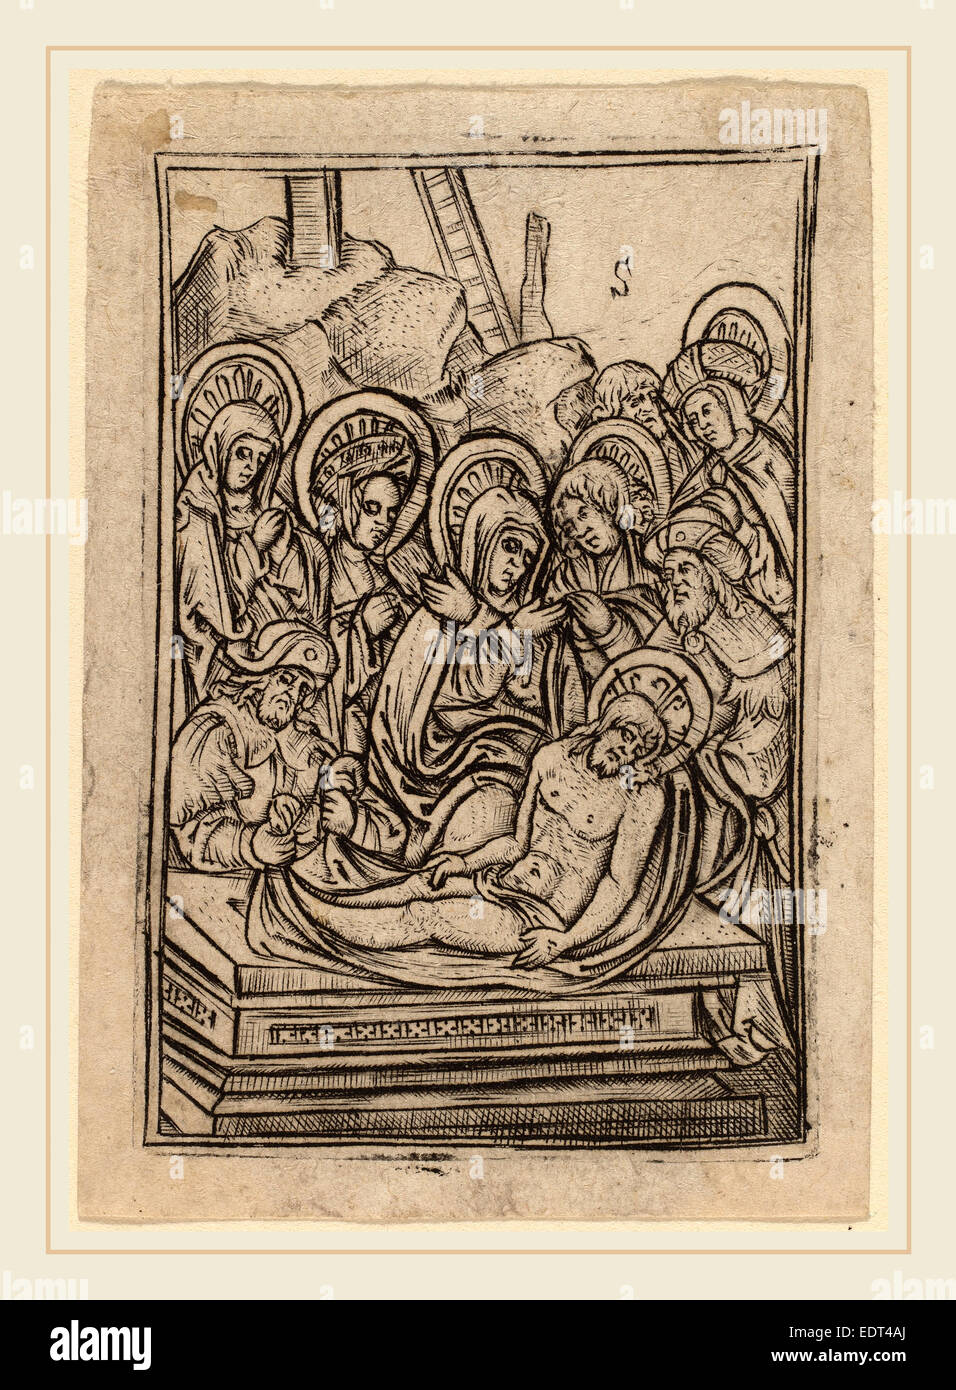 Master S (Flemish, active 1505-1520), The Entombment, engraving - Stock Image